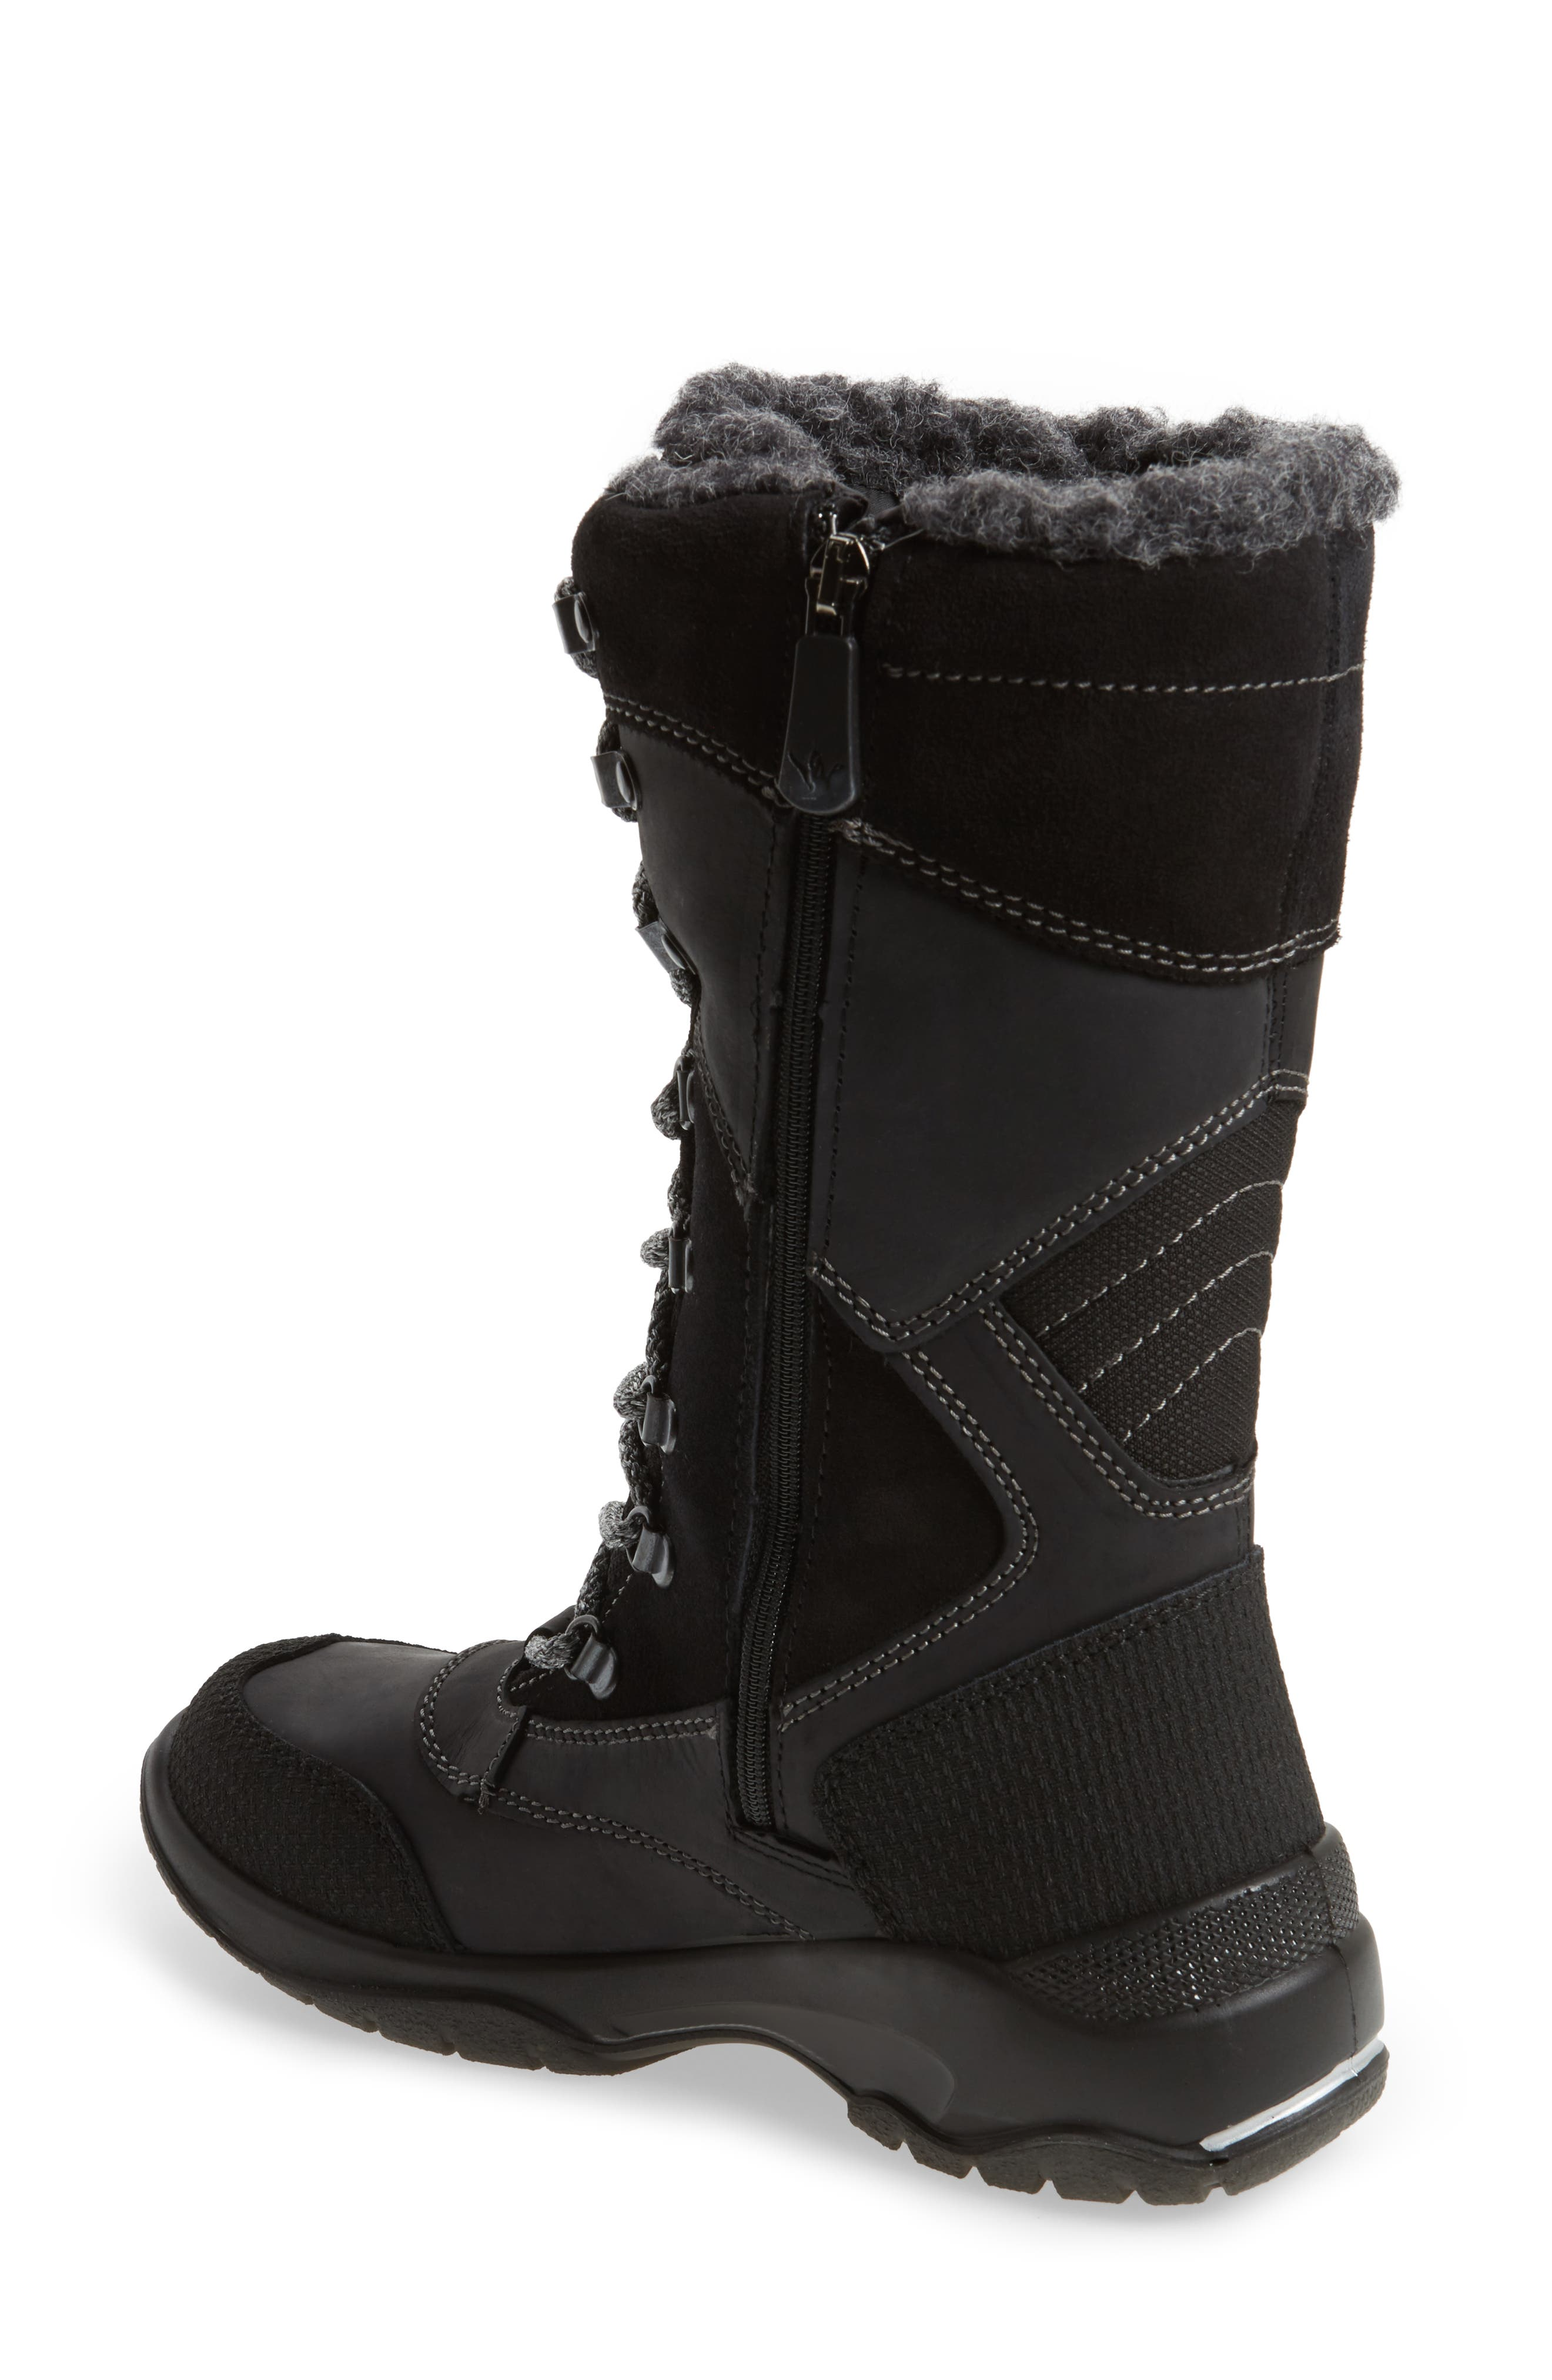 Topspeed Faux Fur Lined Waterproof Boot,                             Alternate thumbnail 2, color,                             Black Leather